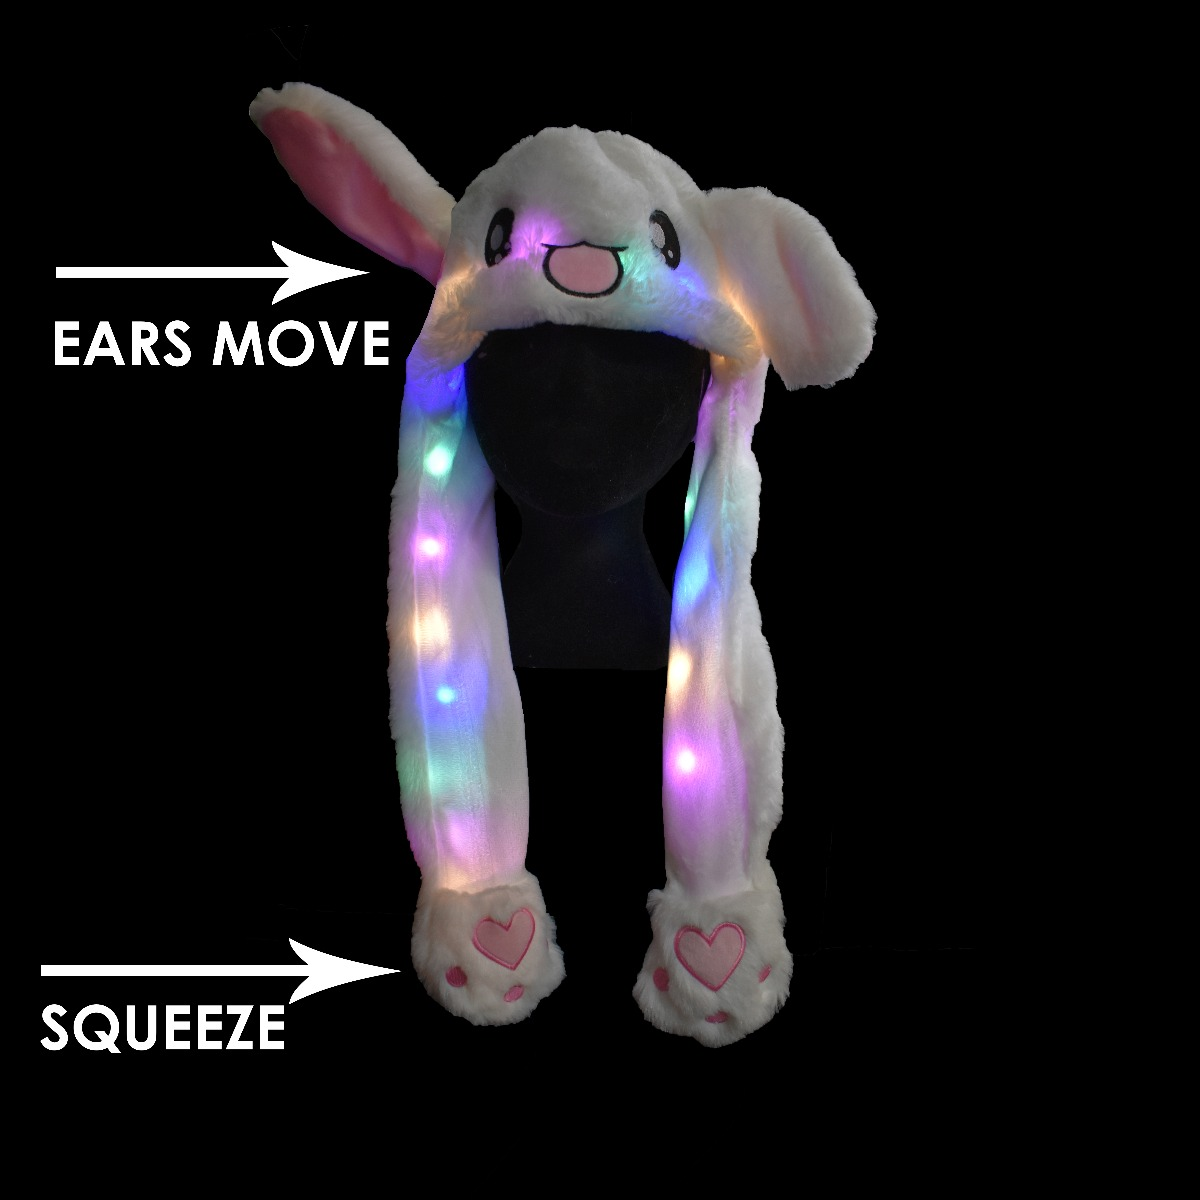 Light up moving rabbit ears